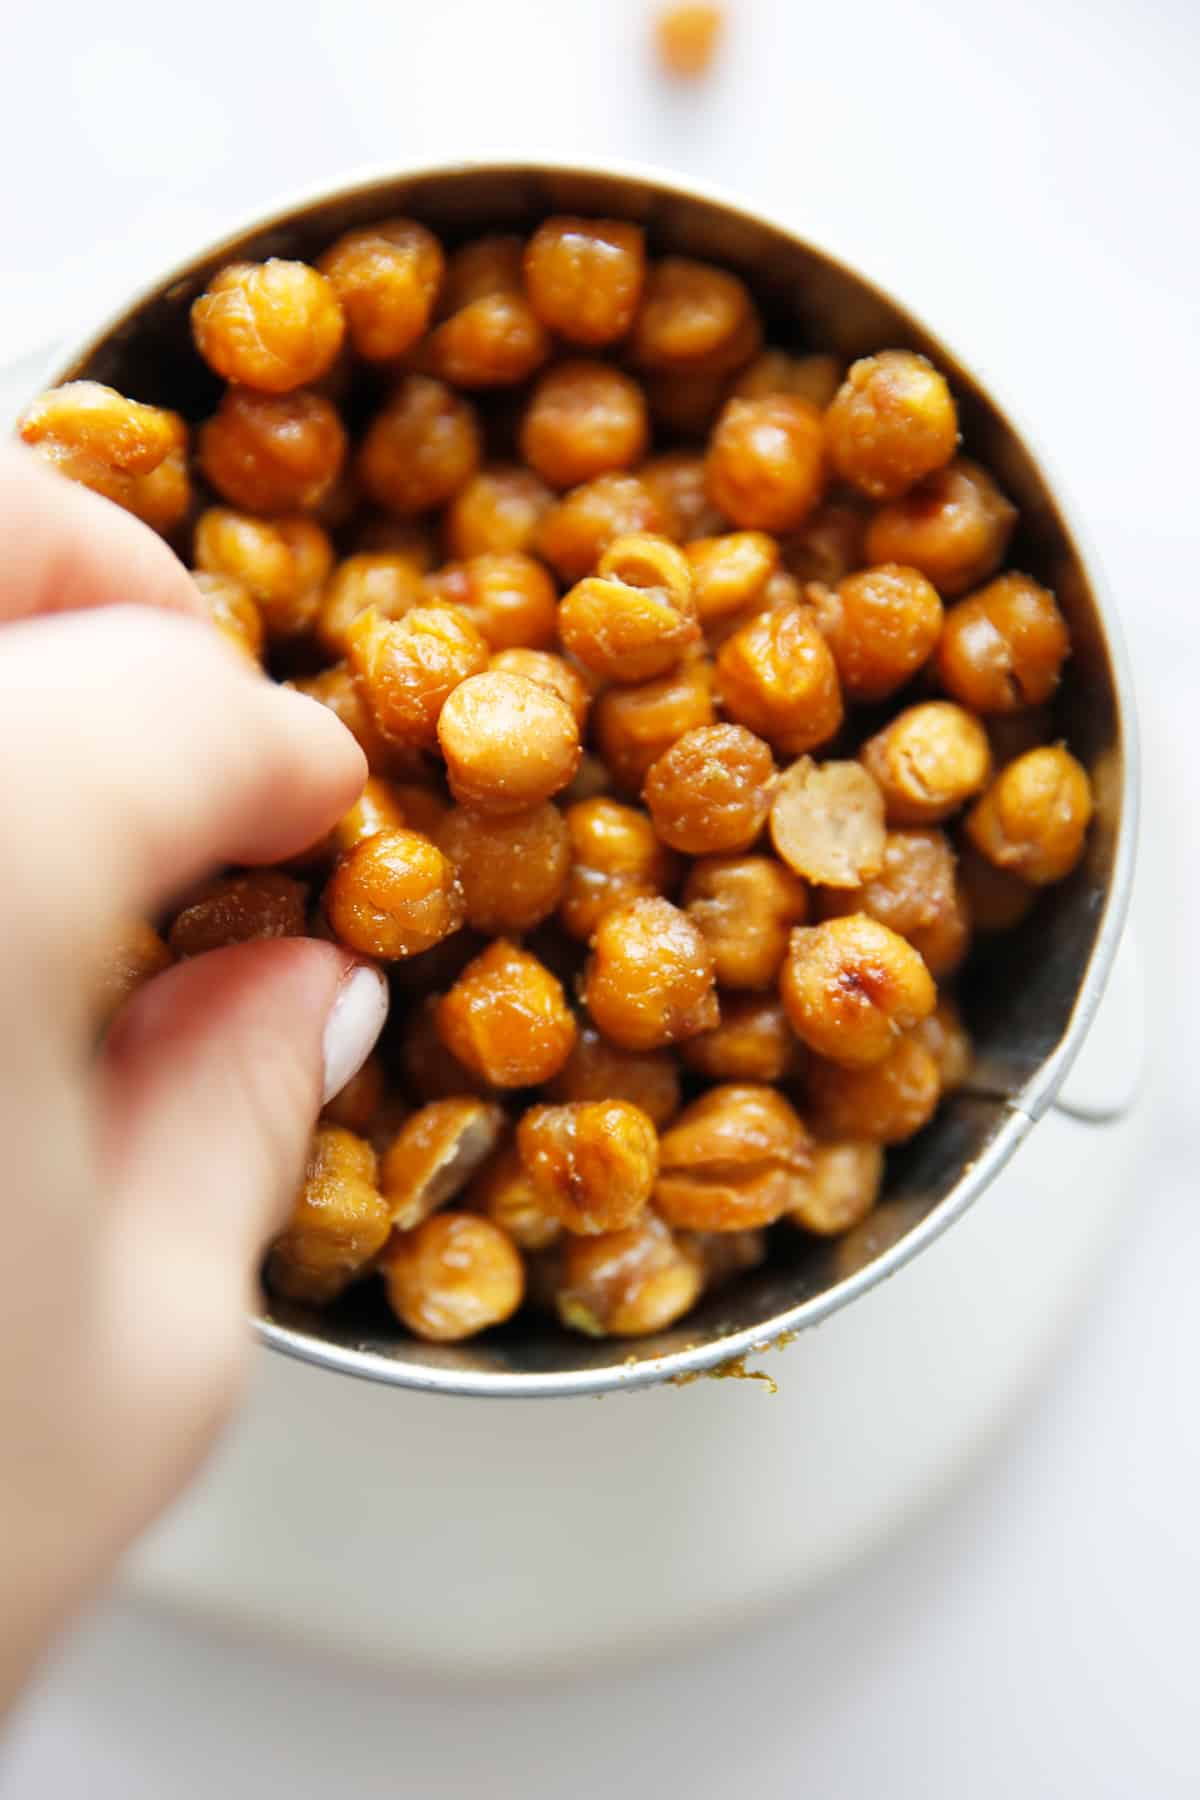 How to make chickpeas crunchy